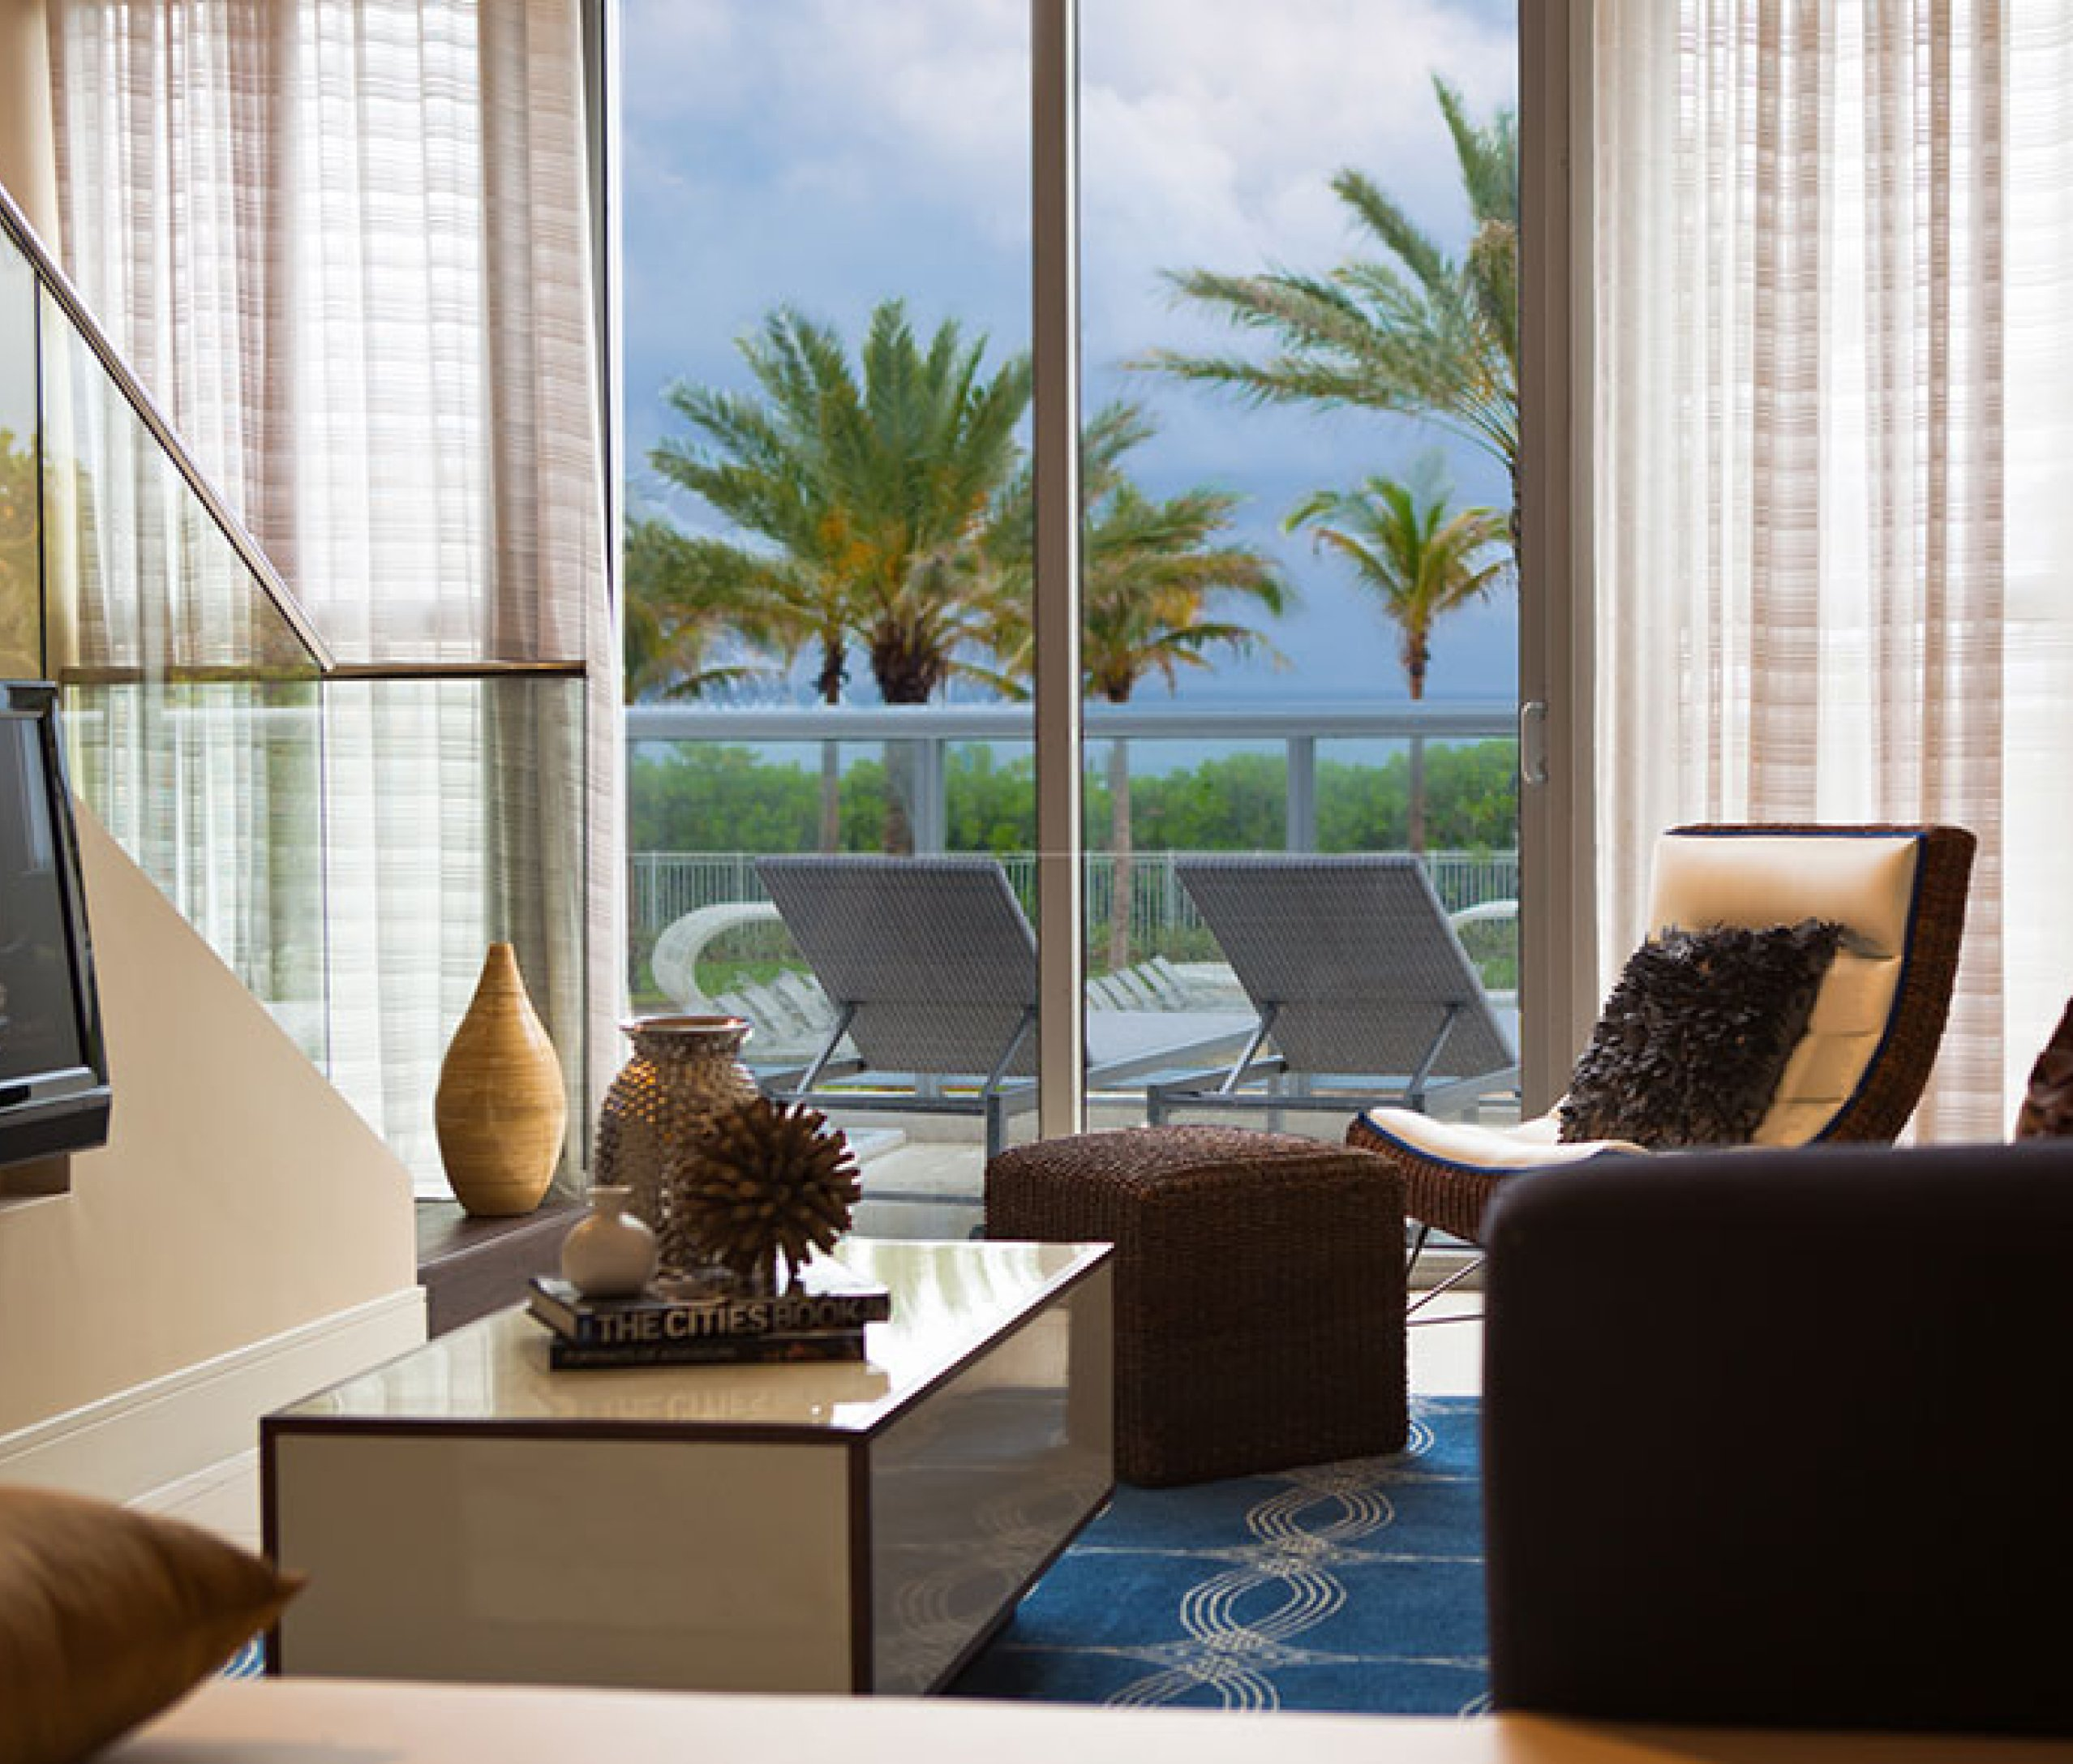 View from a window of a deluxe bay view room at Eden Roc